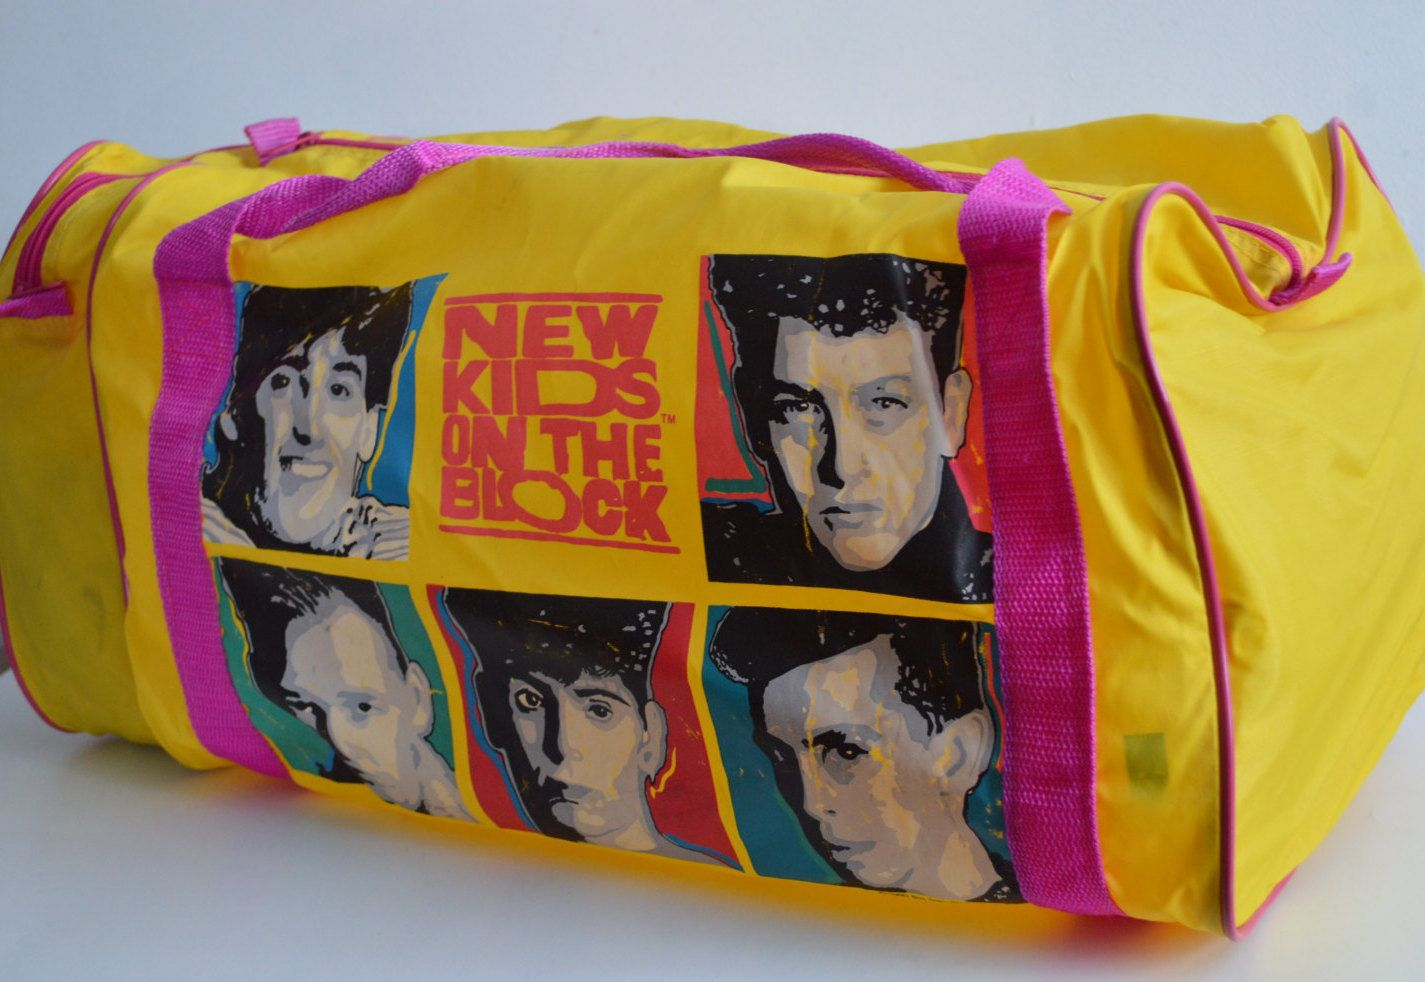 Vintage New Kids on the Block Duffel Bag 346d91d287de9